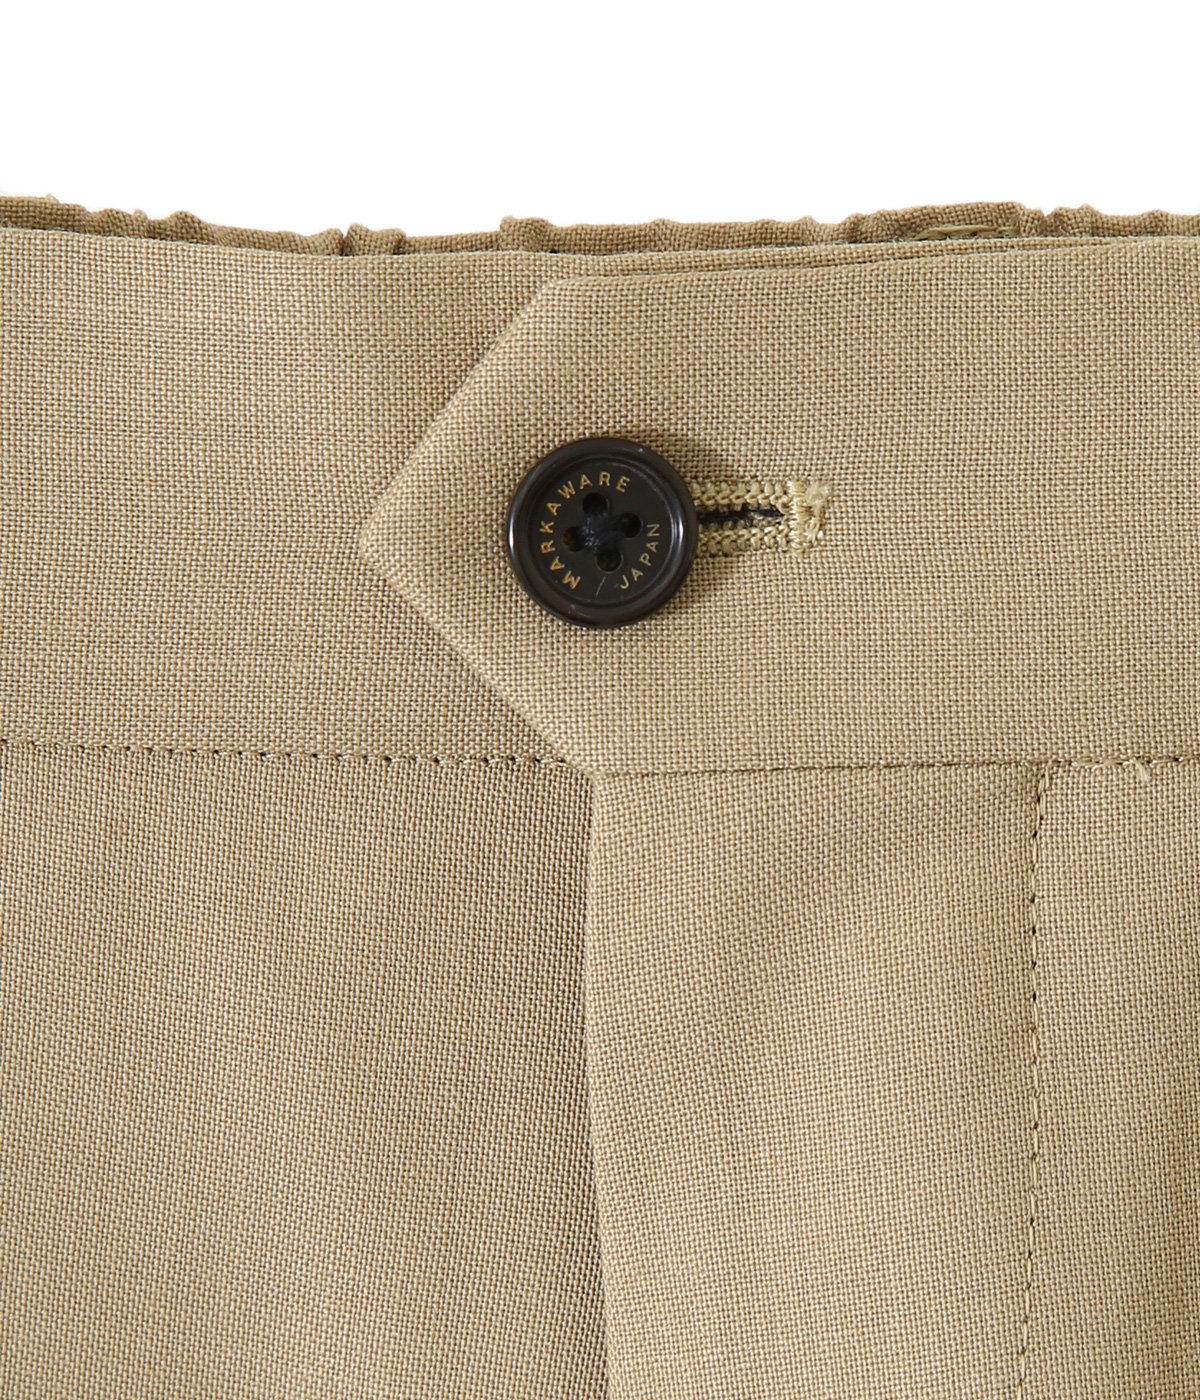 FLAT-FRONT TROUSERS - ORGANIC WOOL TROPICAL -